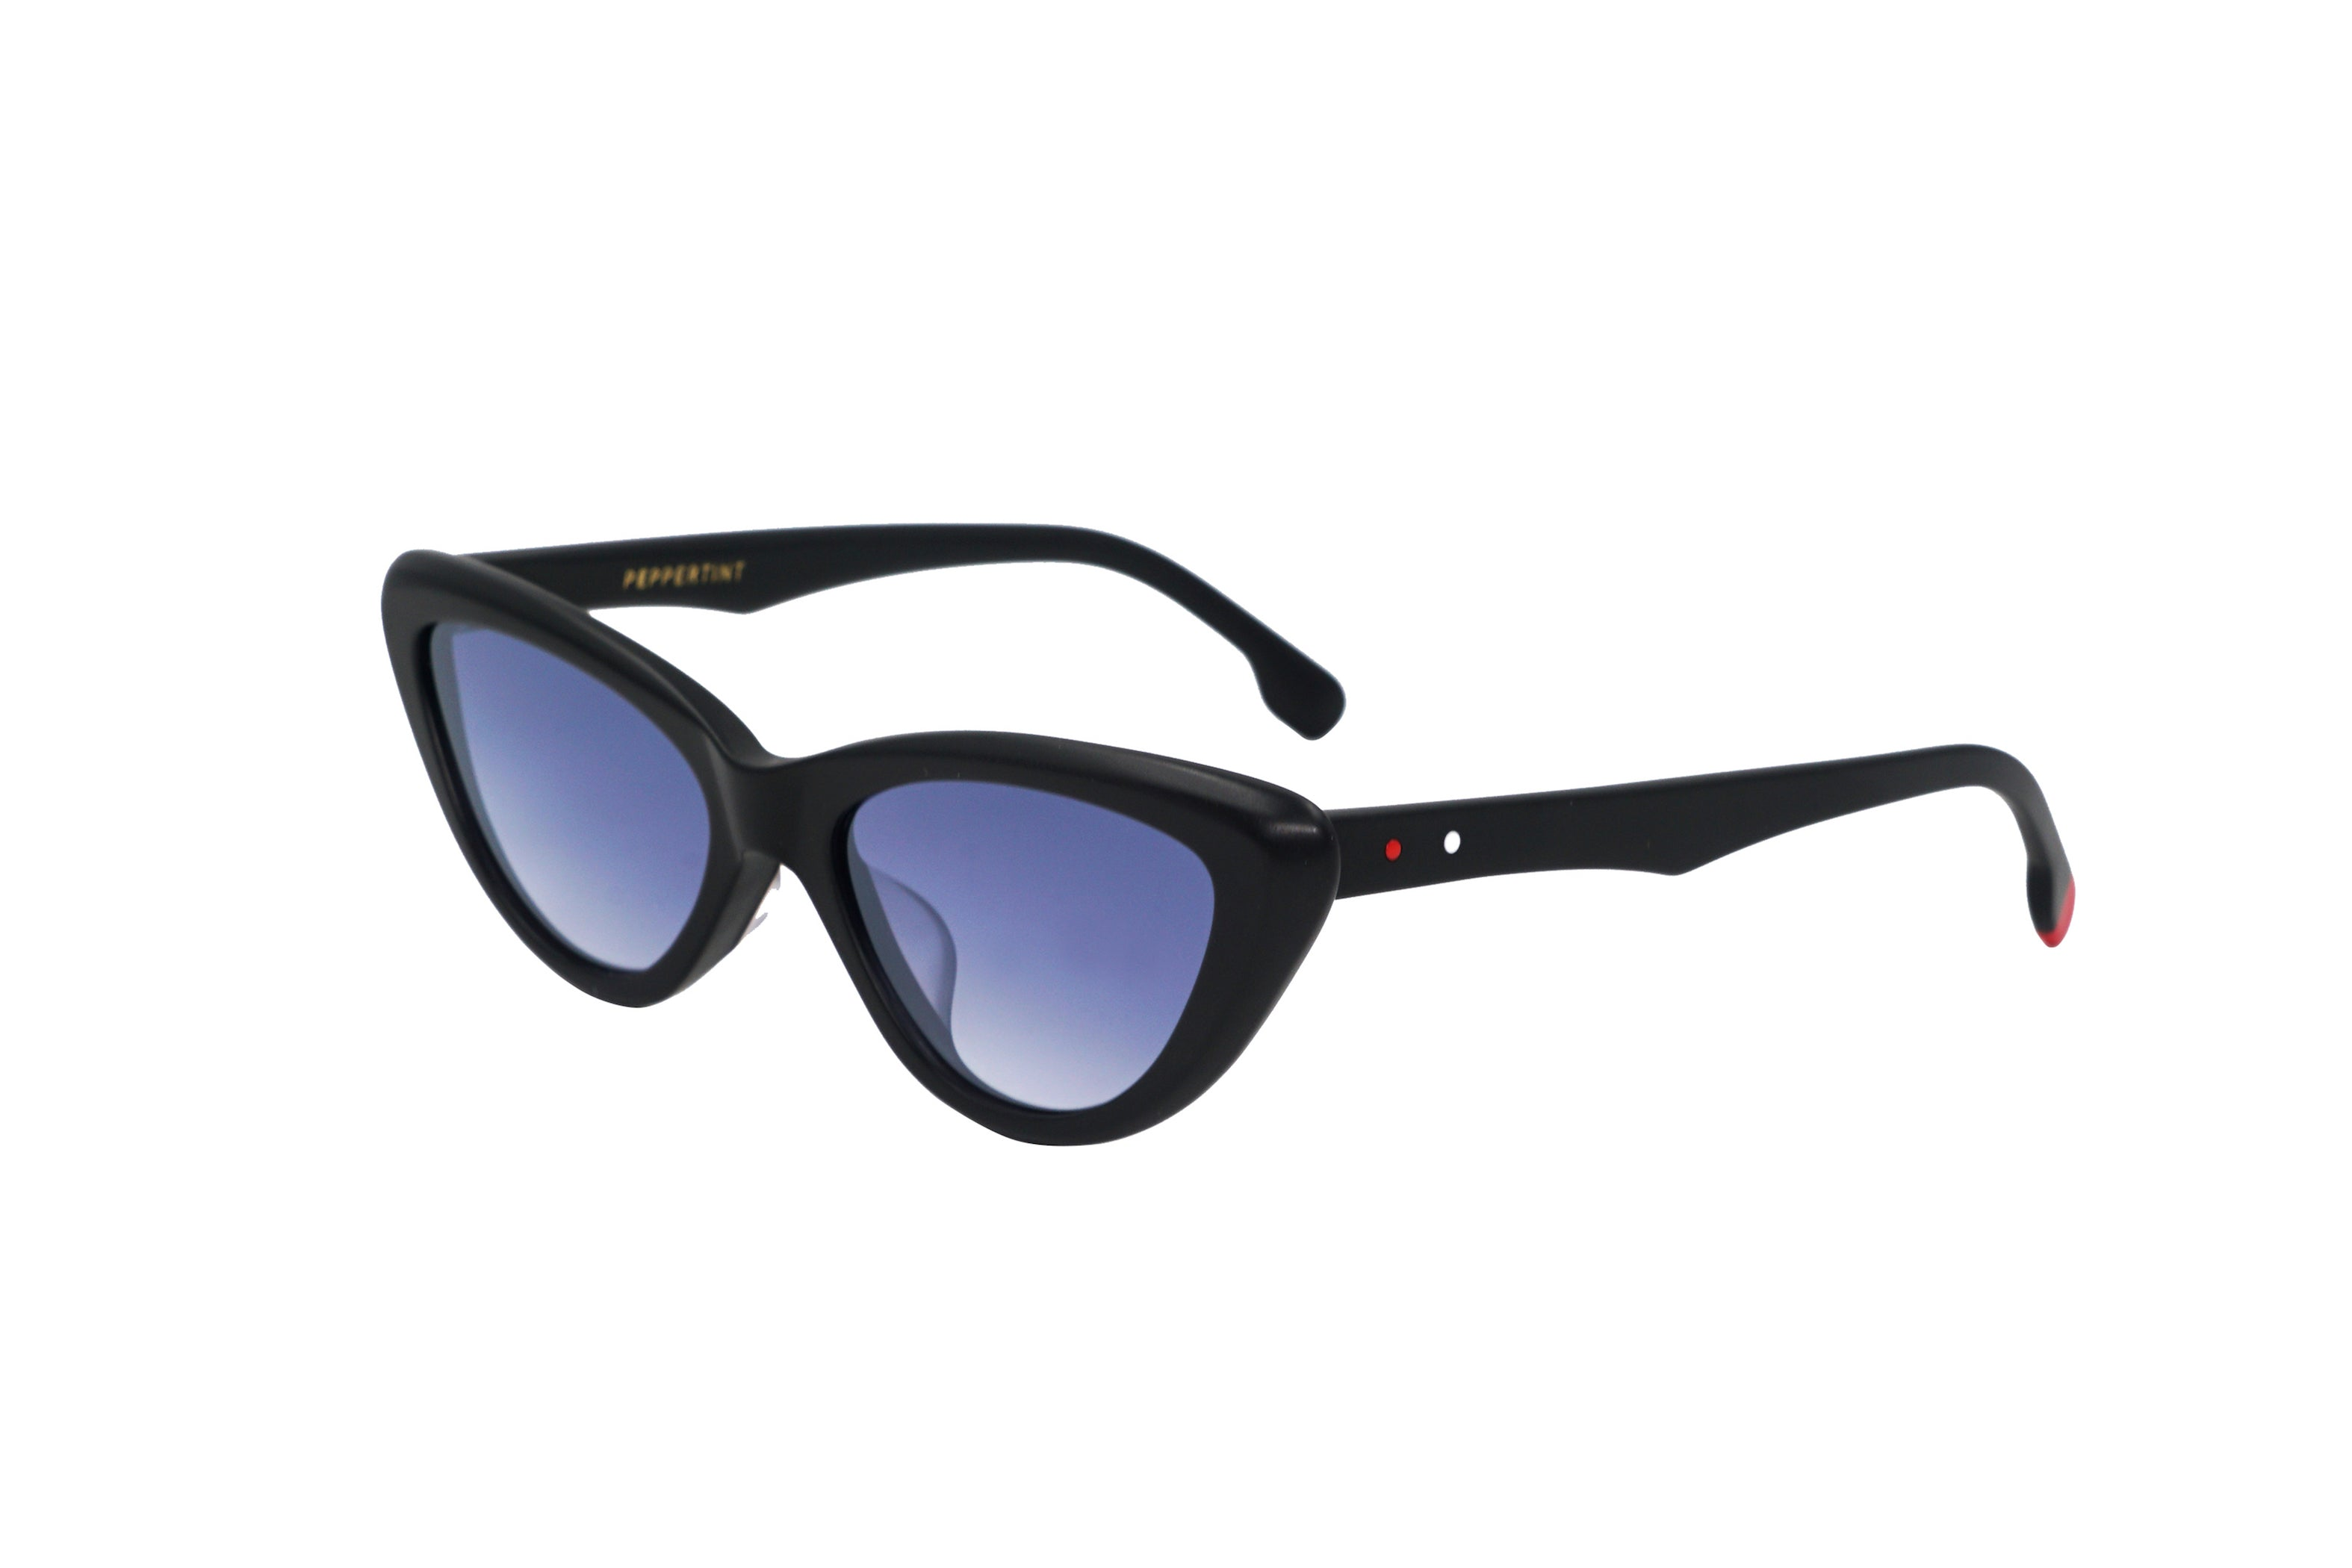 Beverly in Matte Black - Peppertint - Designer sunglasses